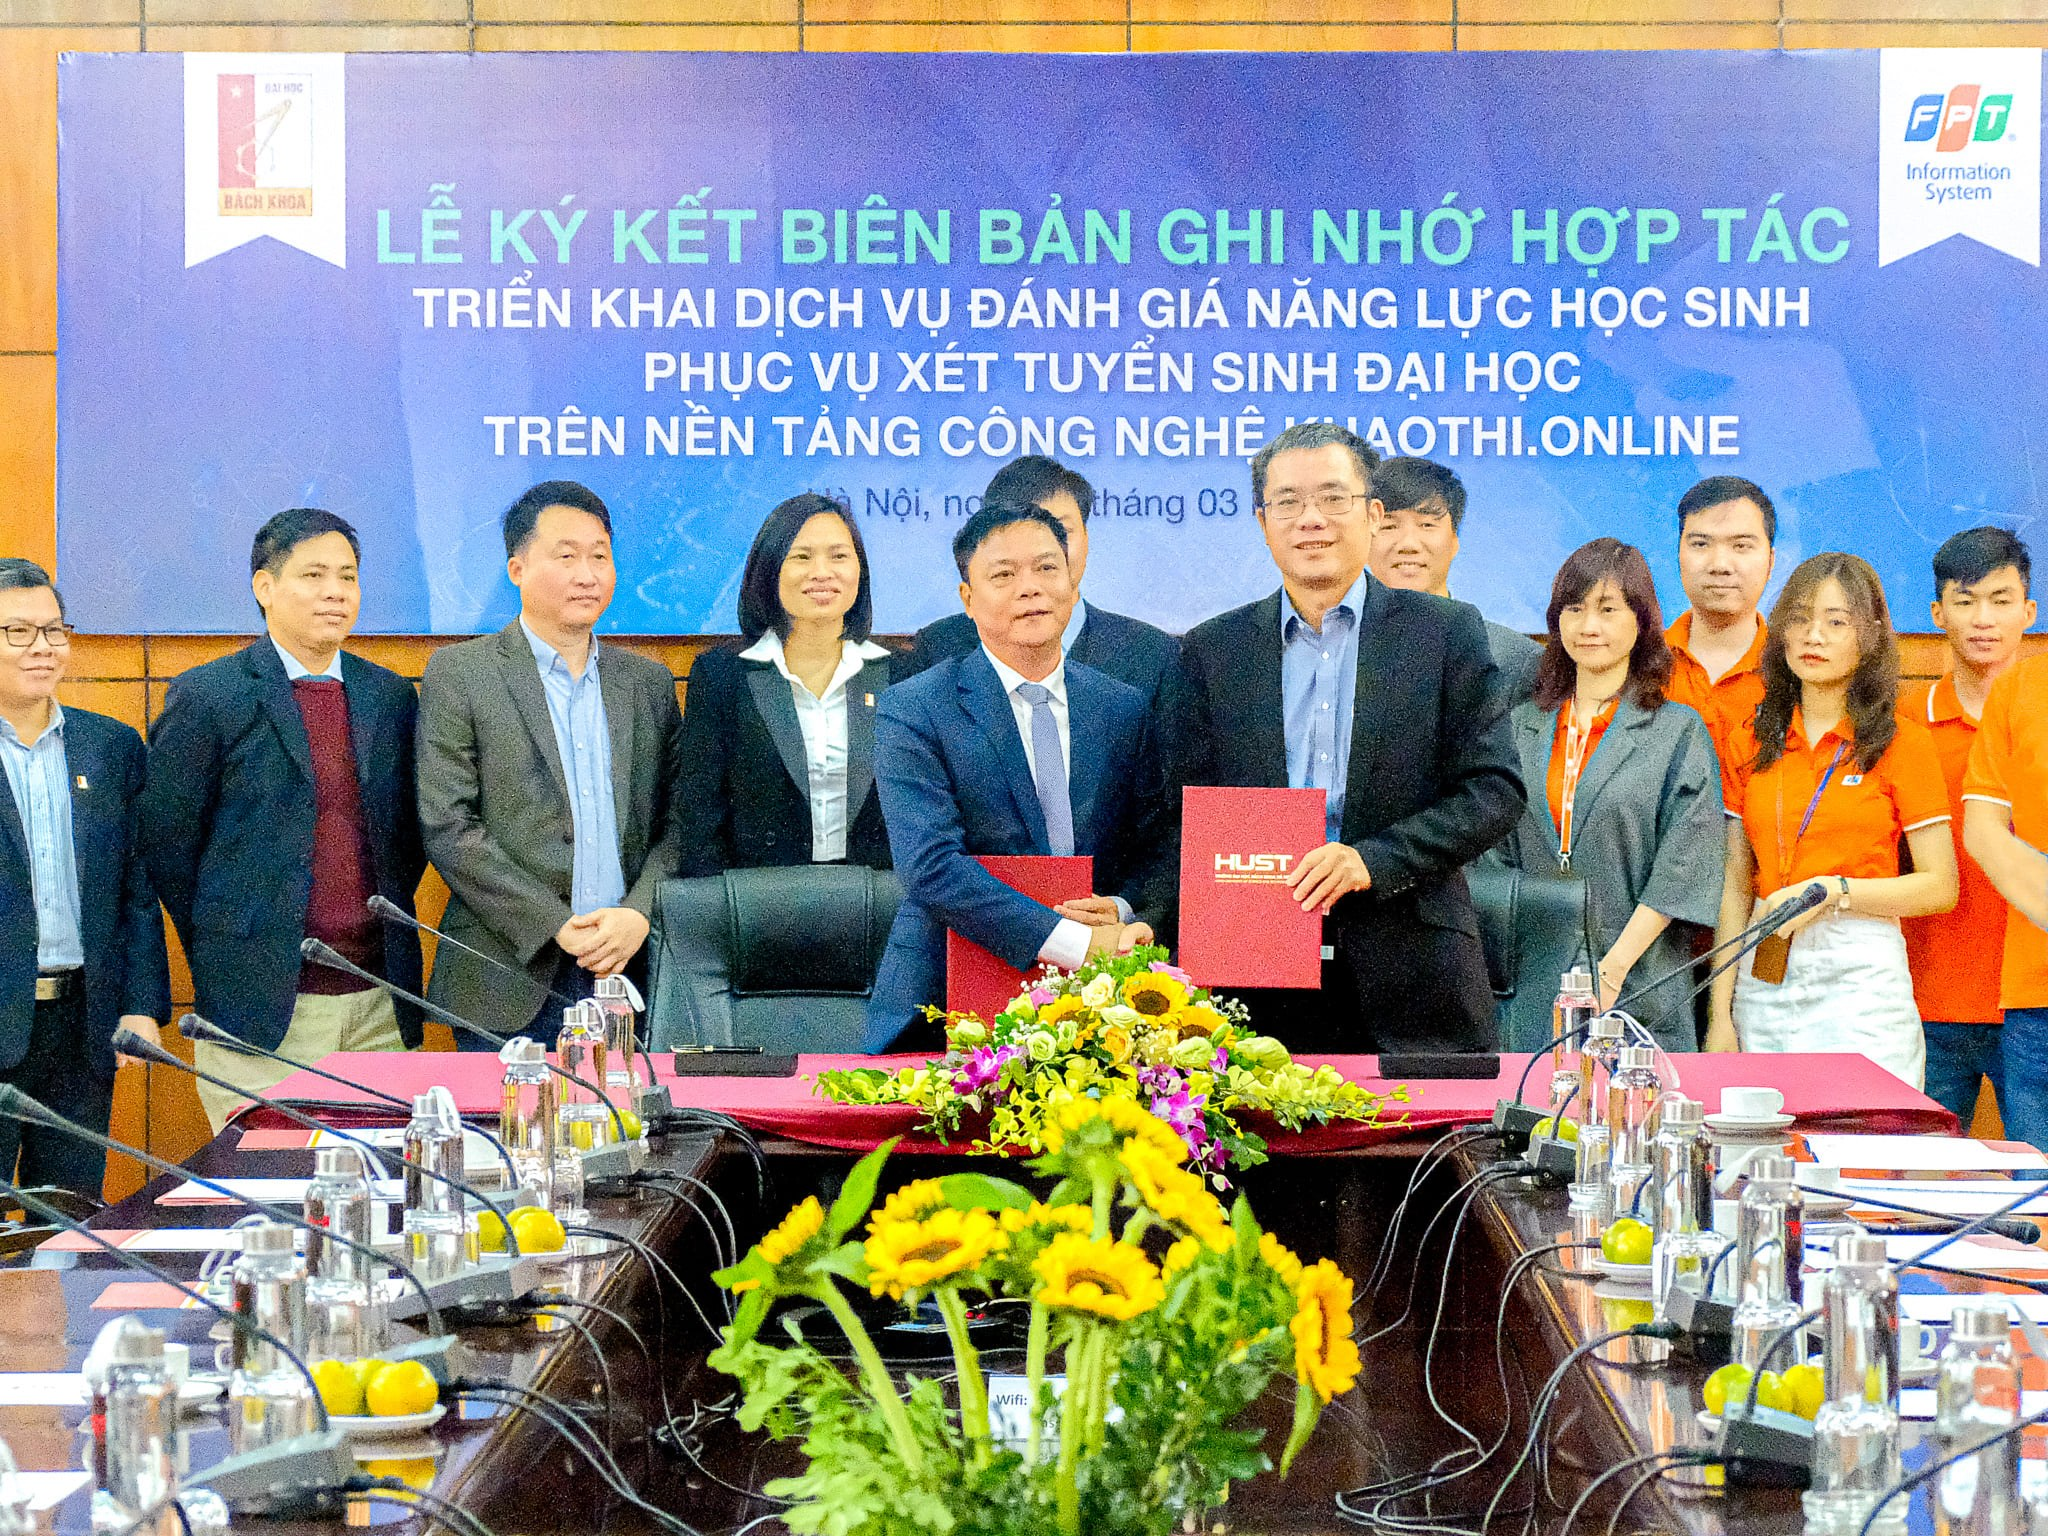 Hanoi University of Science and Technology implements the Khaothi.Online platform of FPT IS